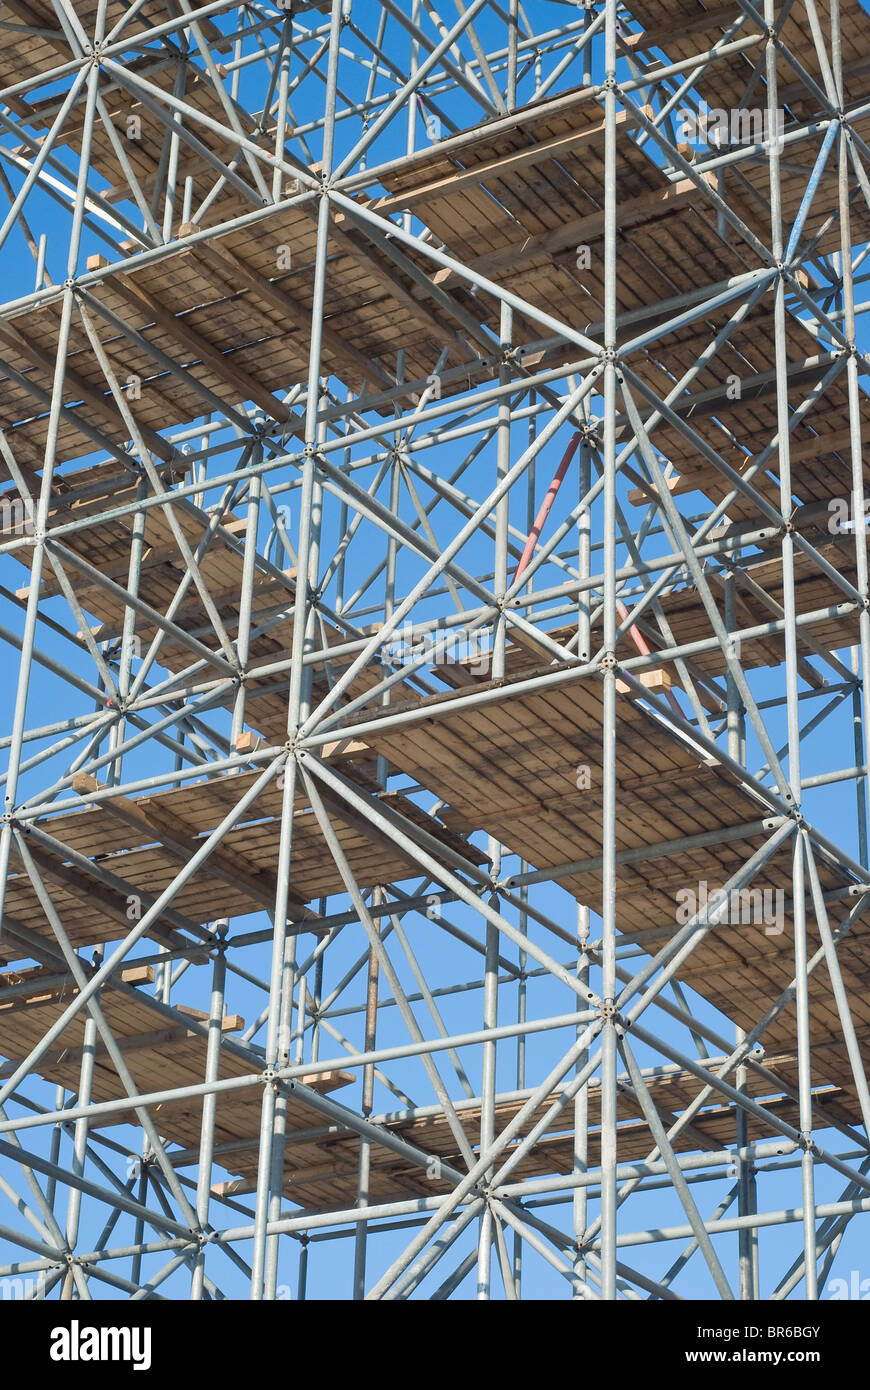 Scaffolding as Safety Equipment on a Construction Site - Stock Image